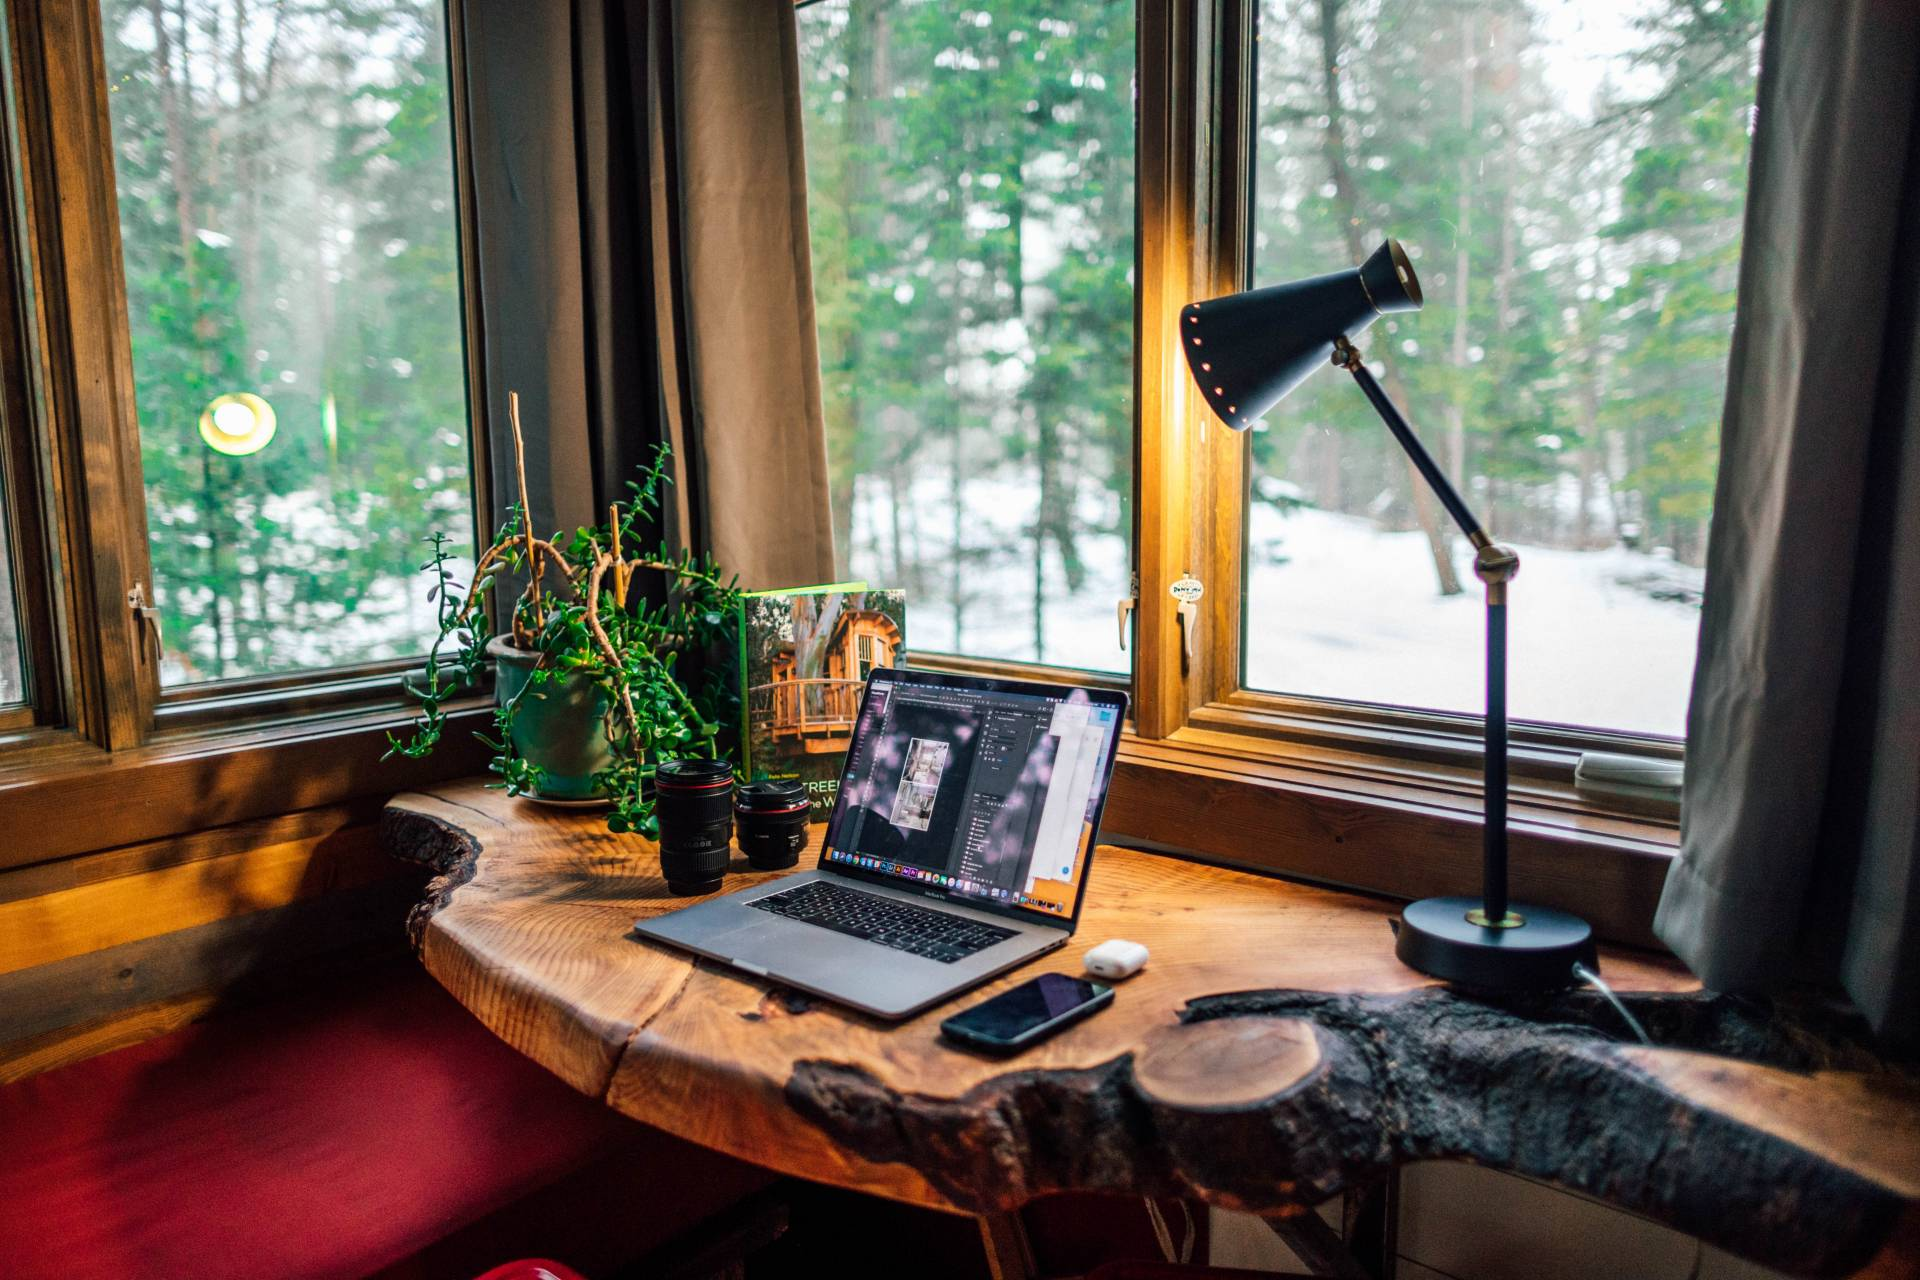 3 Steps to Make Your Home Office More Inspiring